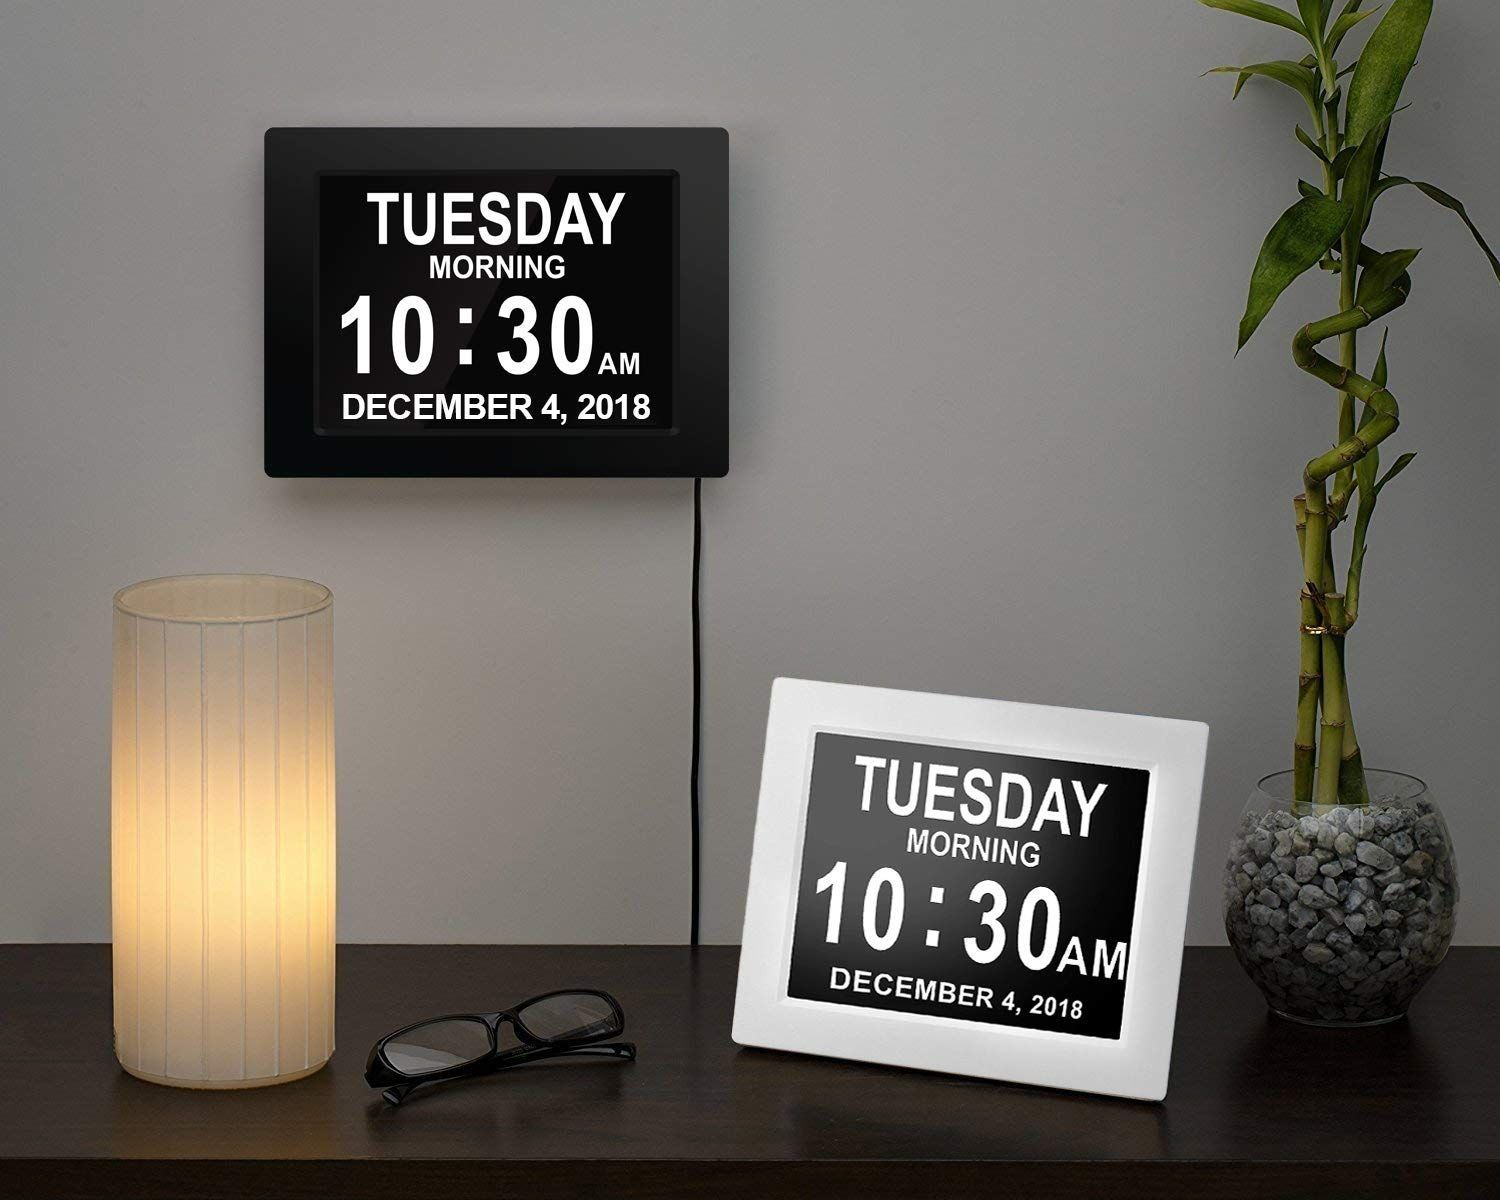 American Lifetime Day Clock Newest Version Extra Large Impaired Vision Digital Clock with Battery Backup /& 5 Alarm Options White Finish